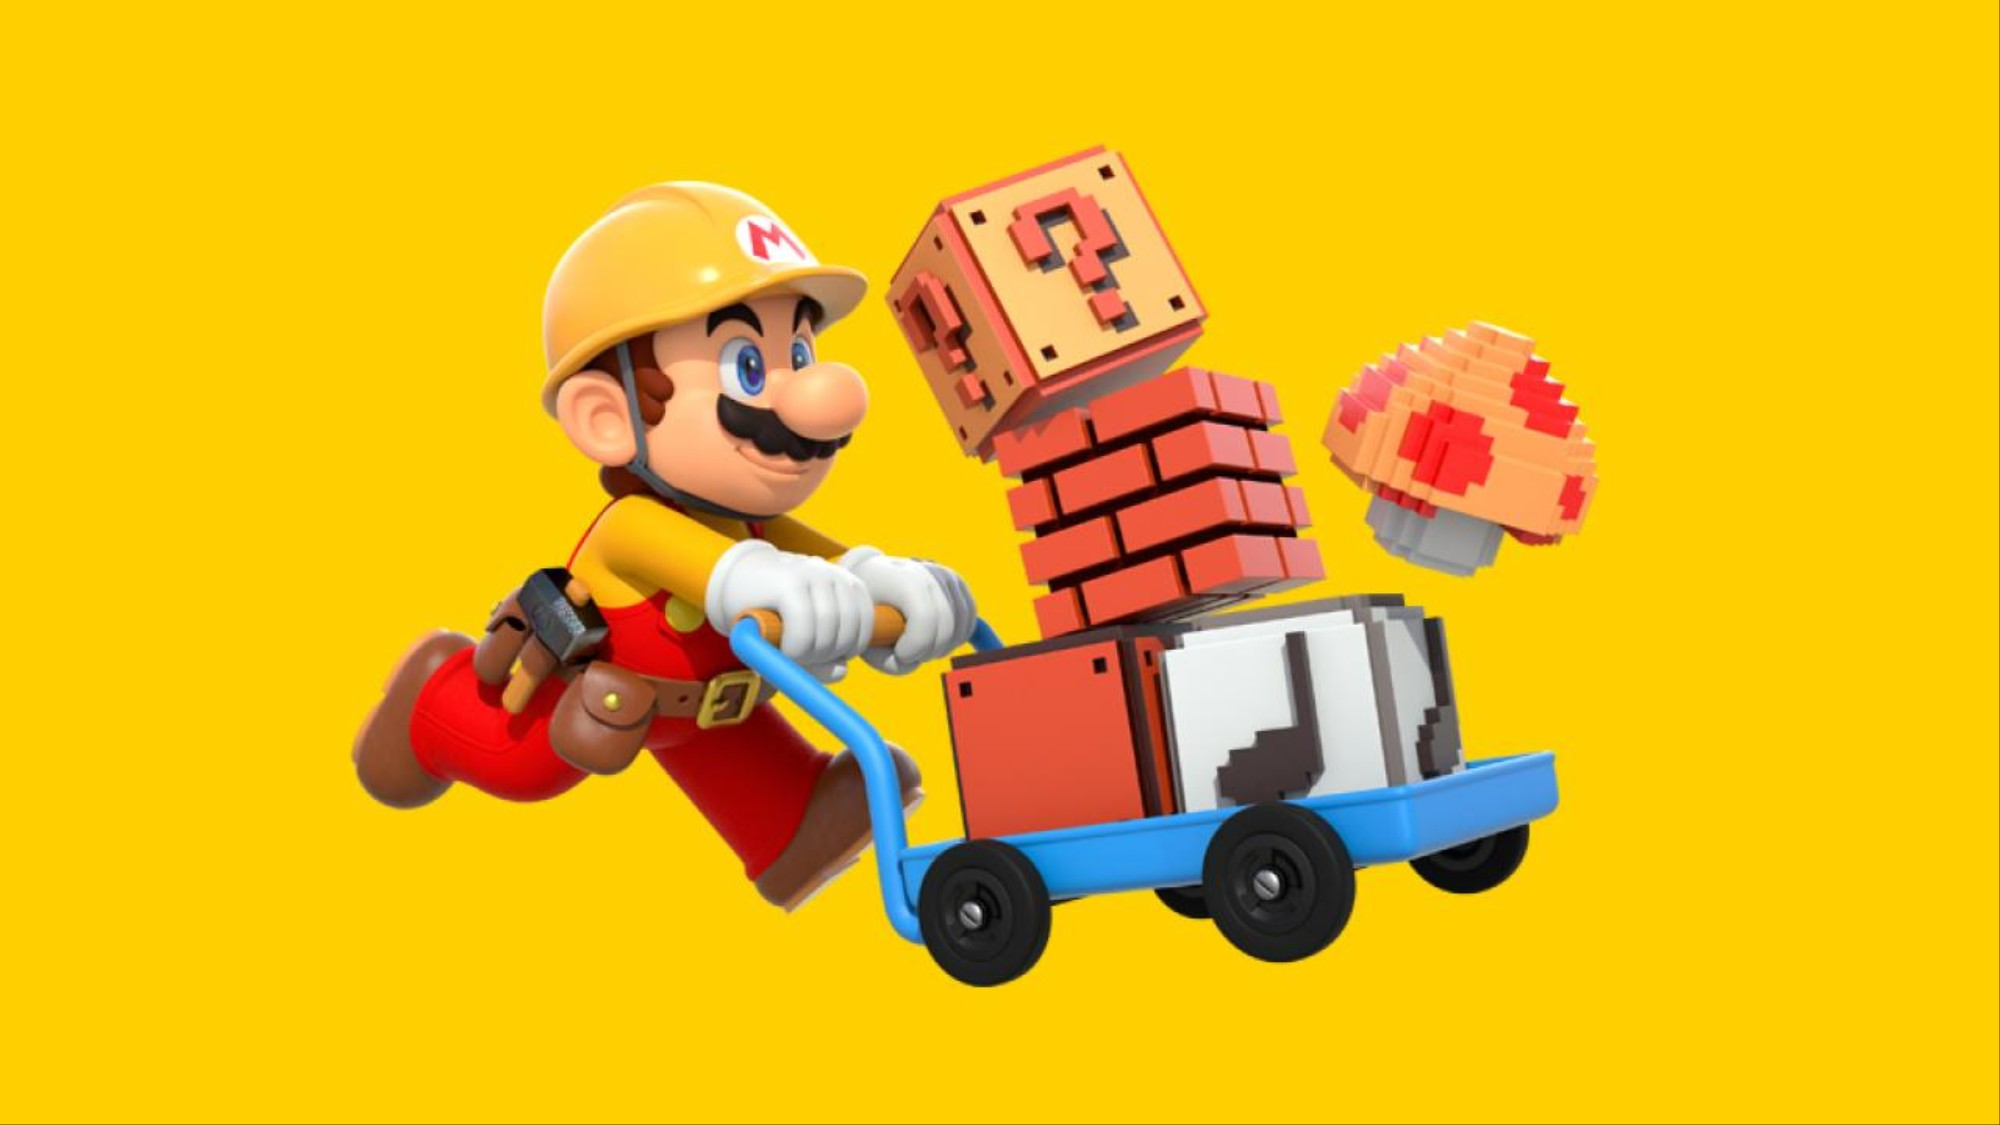 Mario Maker' Player Has Now Spent 2,500 Hours Trying to Beat